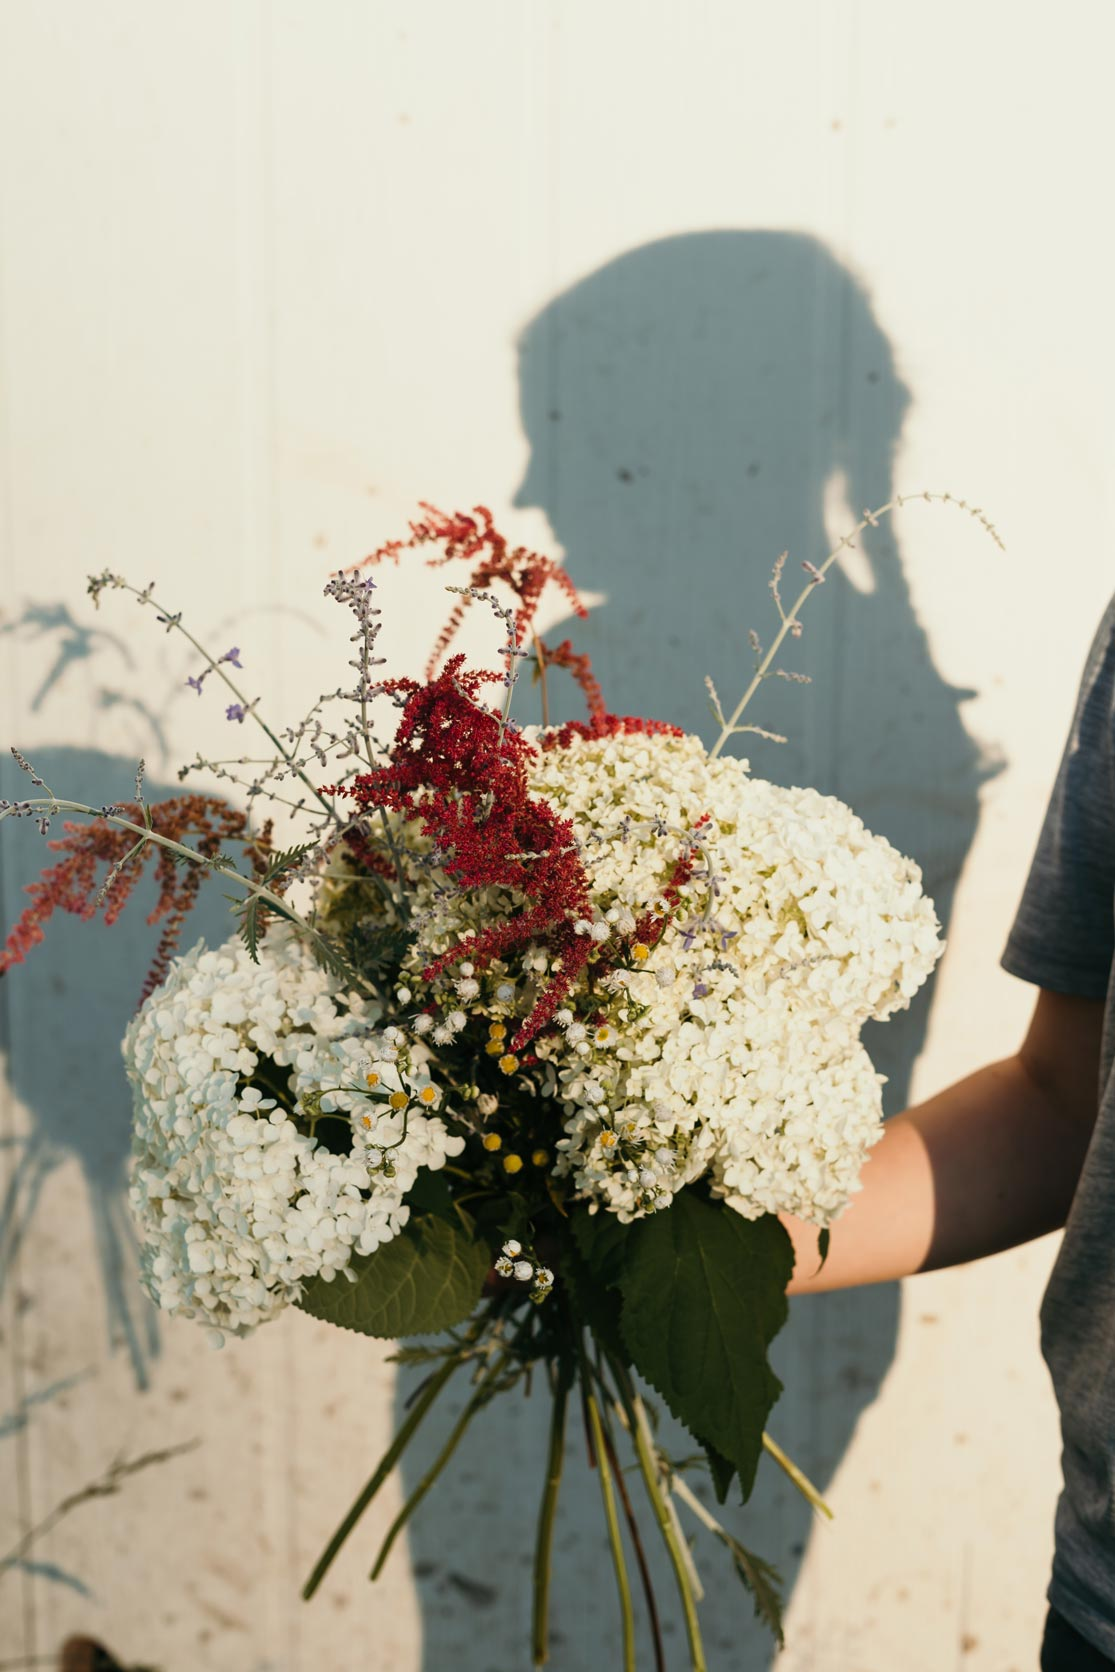 Georgia, 12, holds a bouquet of freshly-picked flowers on a farm in East Berlin, PA. Georgia said that posing for photos made her feel beautiful, even if her face wasn't shown.